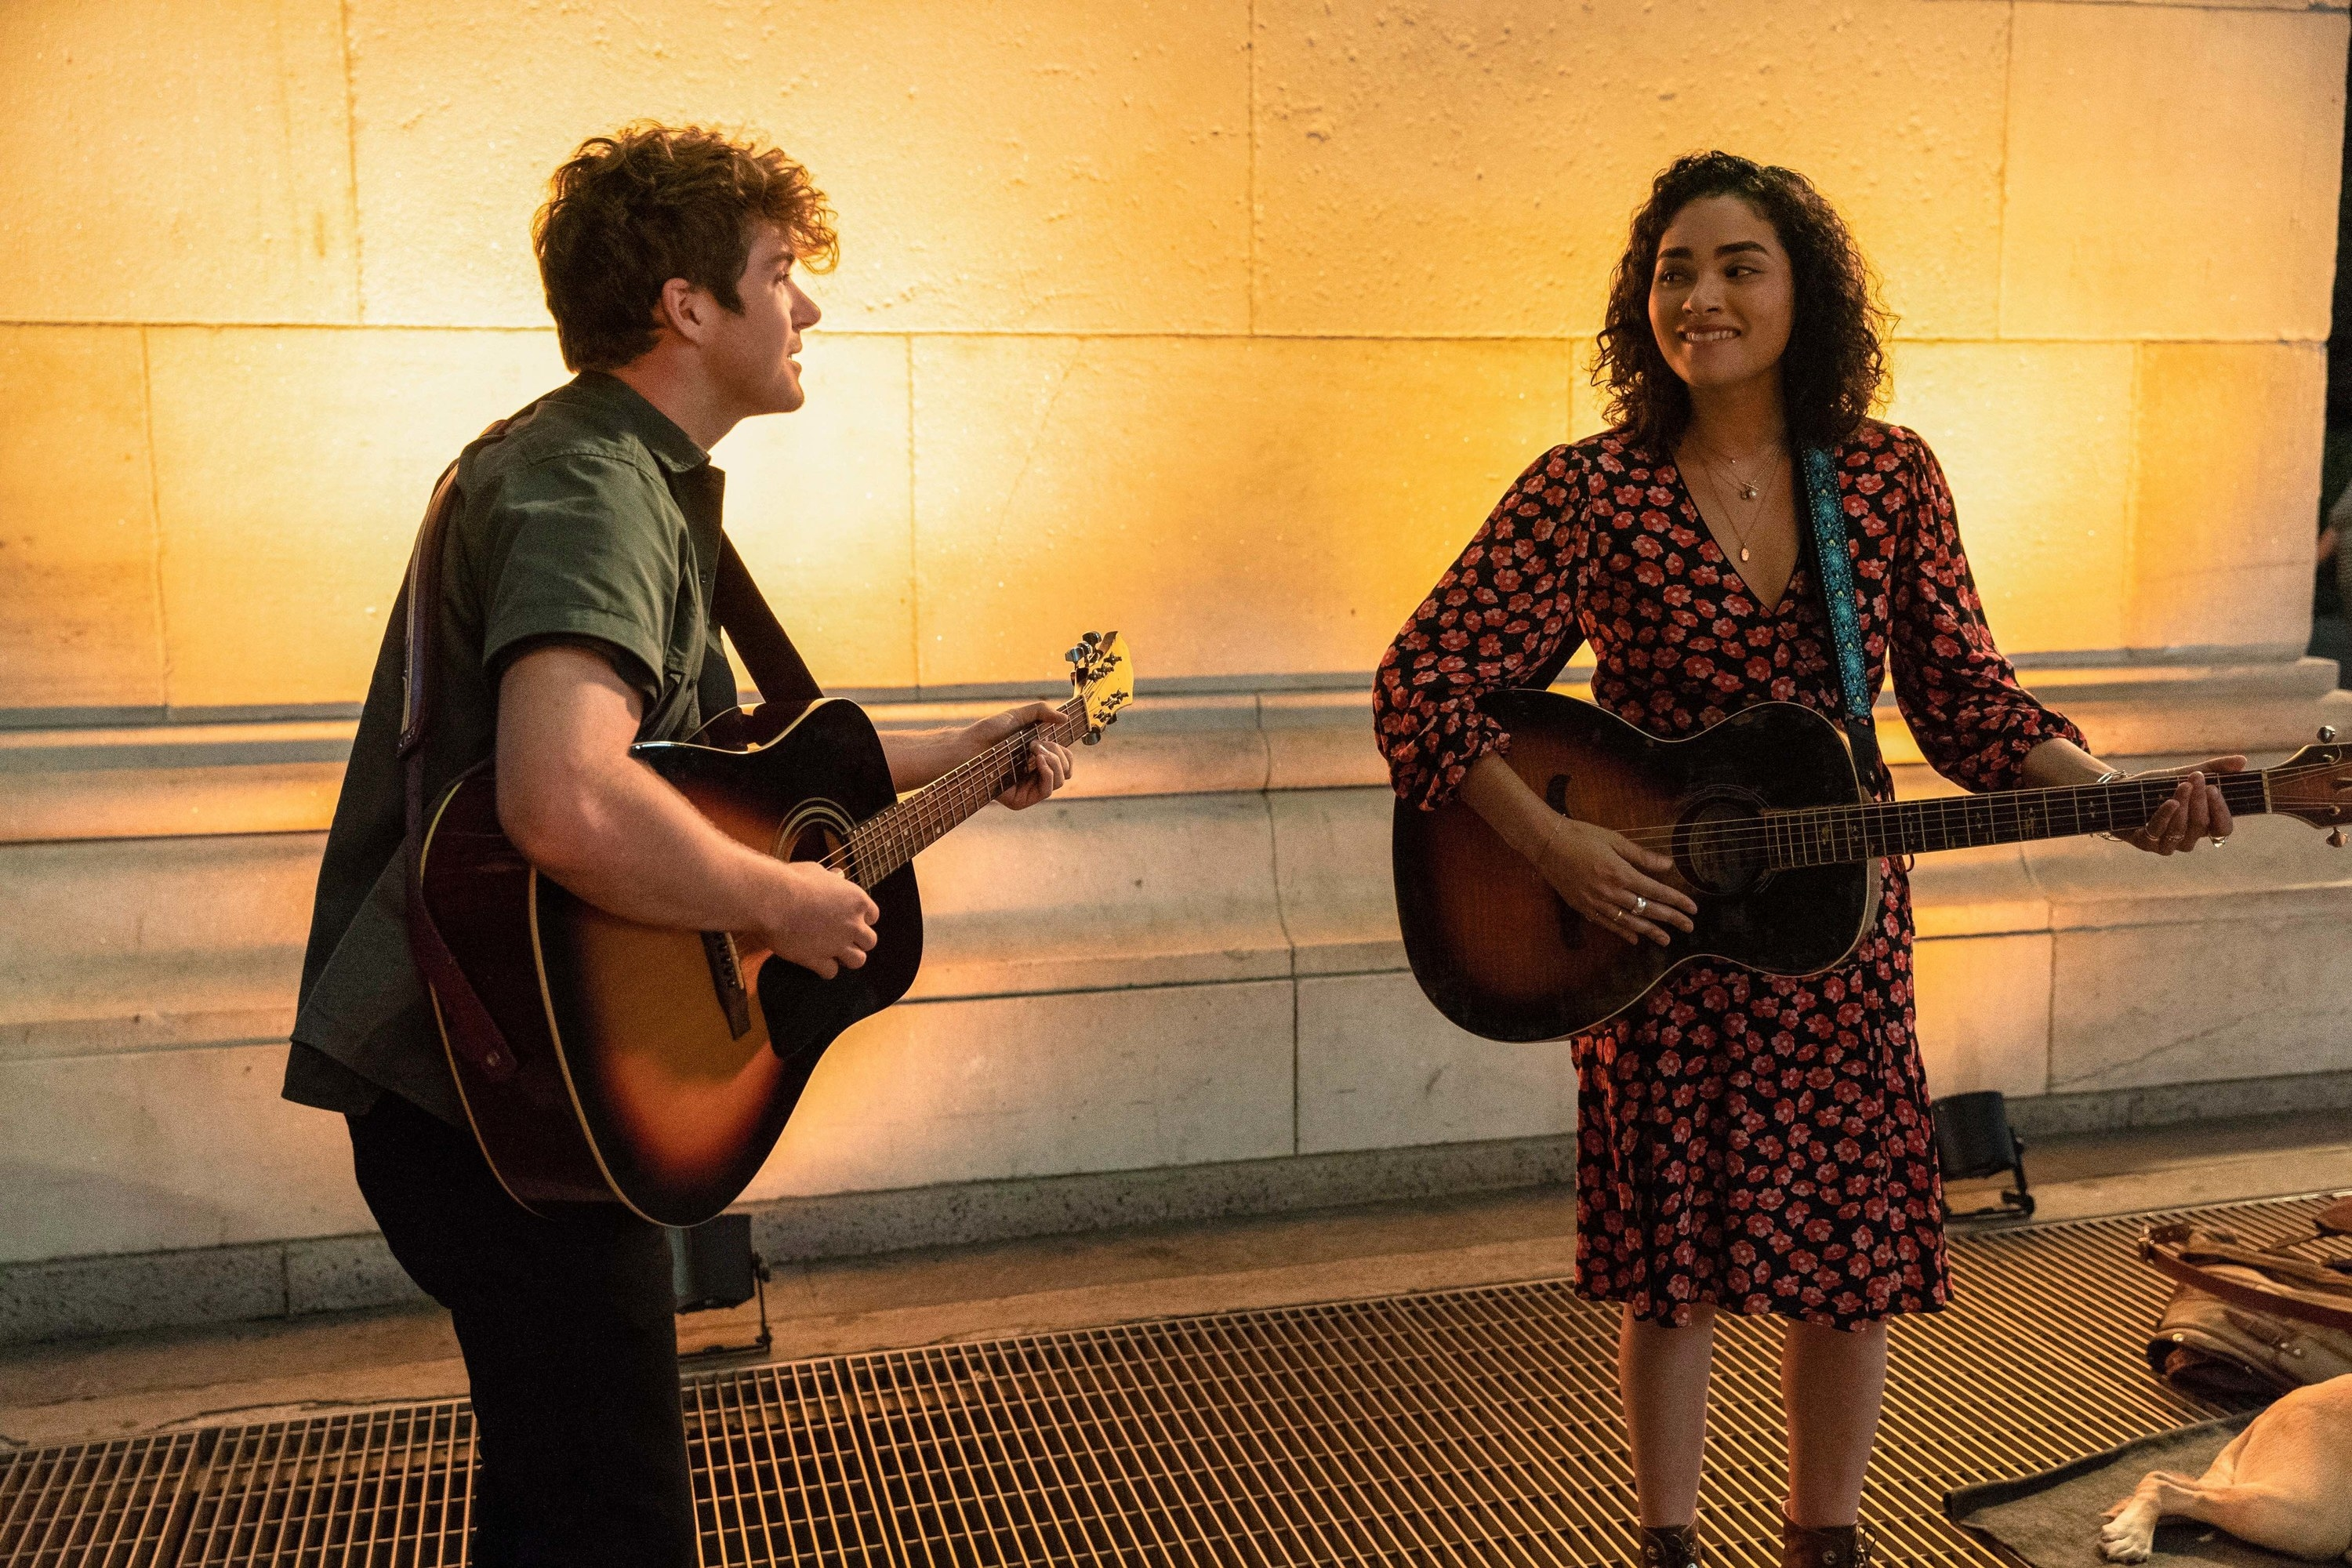 Colton Ryan and Brittany O'Grady as Samuel and Bess singing and playing guitar together